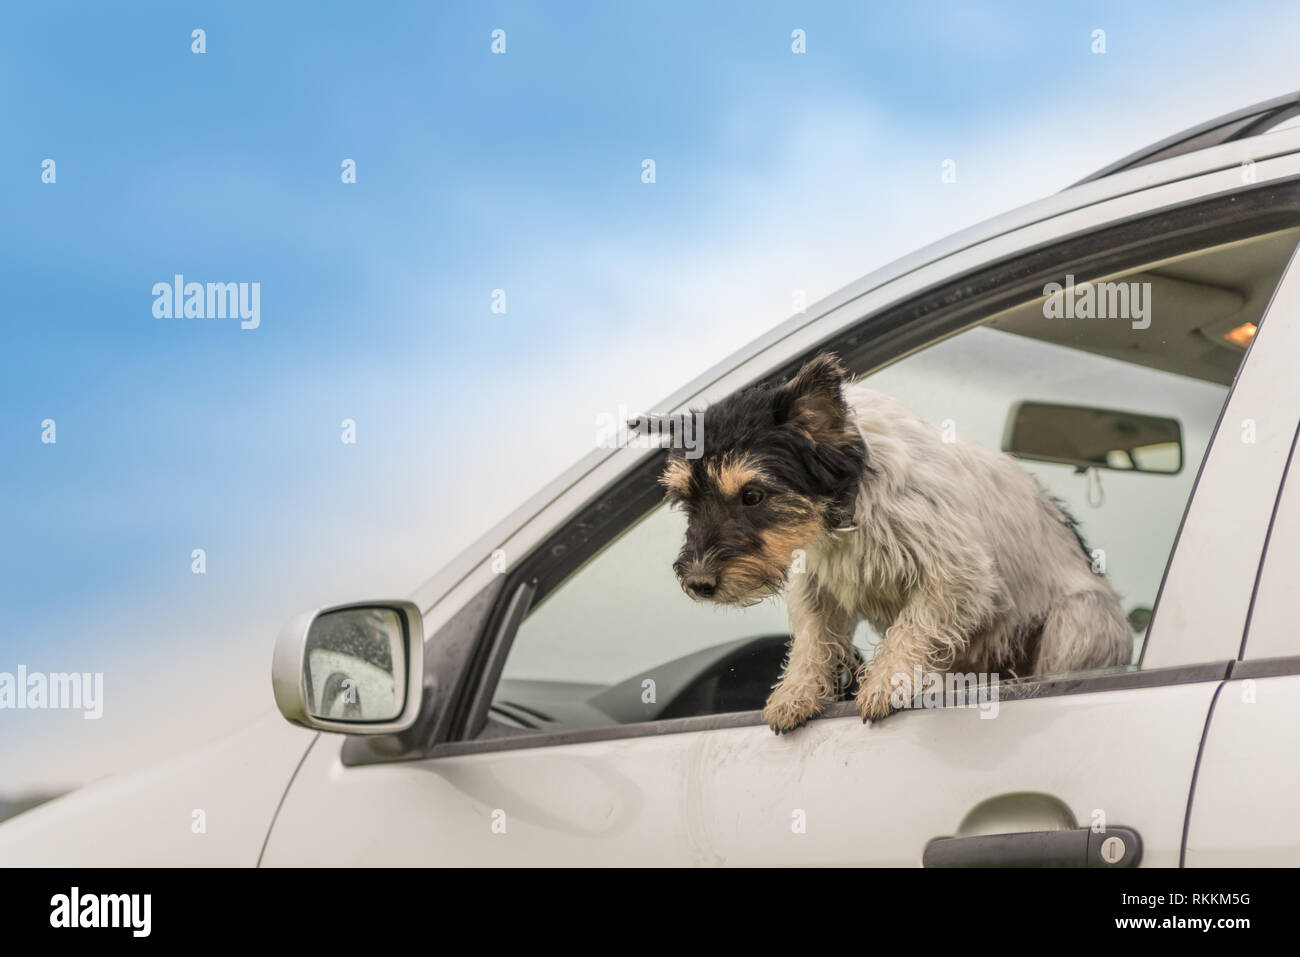 Small dog is sitting in a car and looking out of the car window - jack russell terrier 2 years old - Stock Image